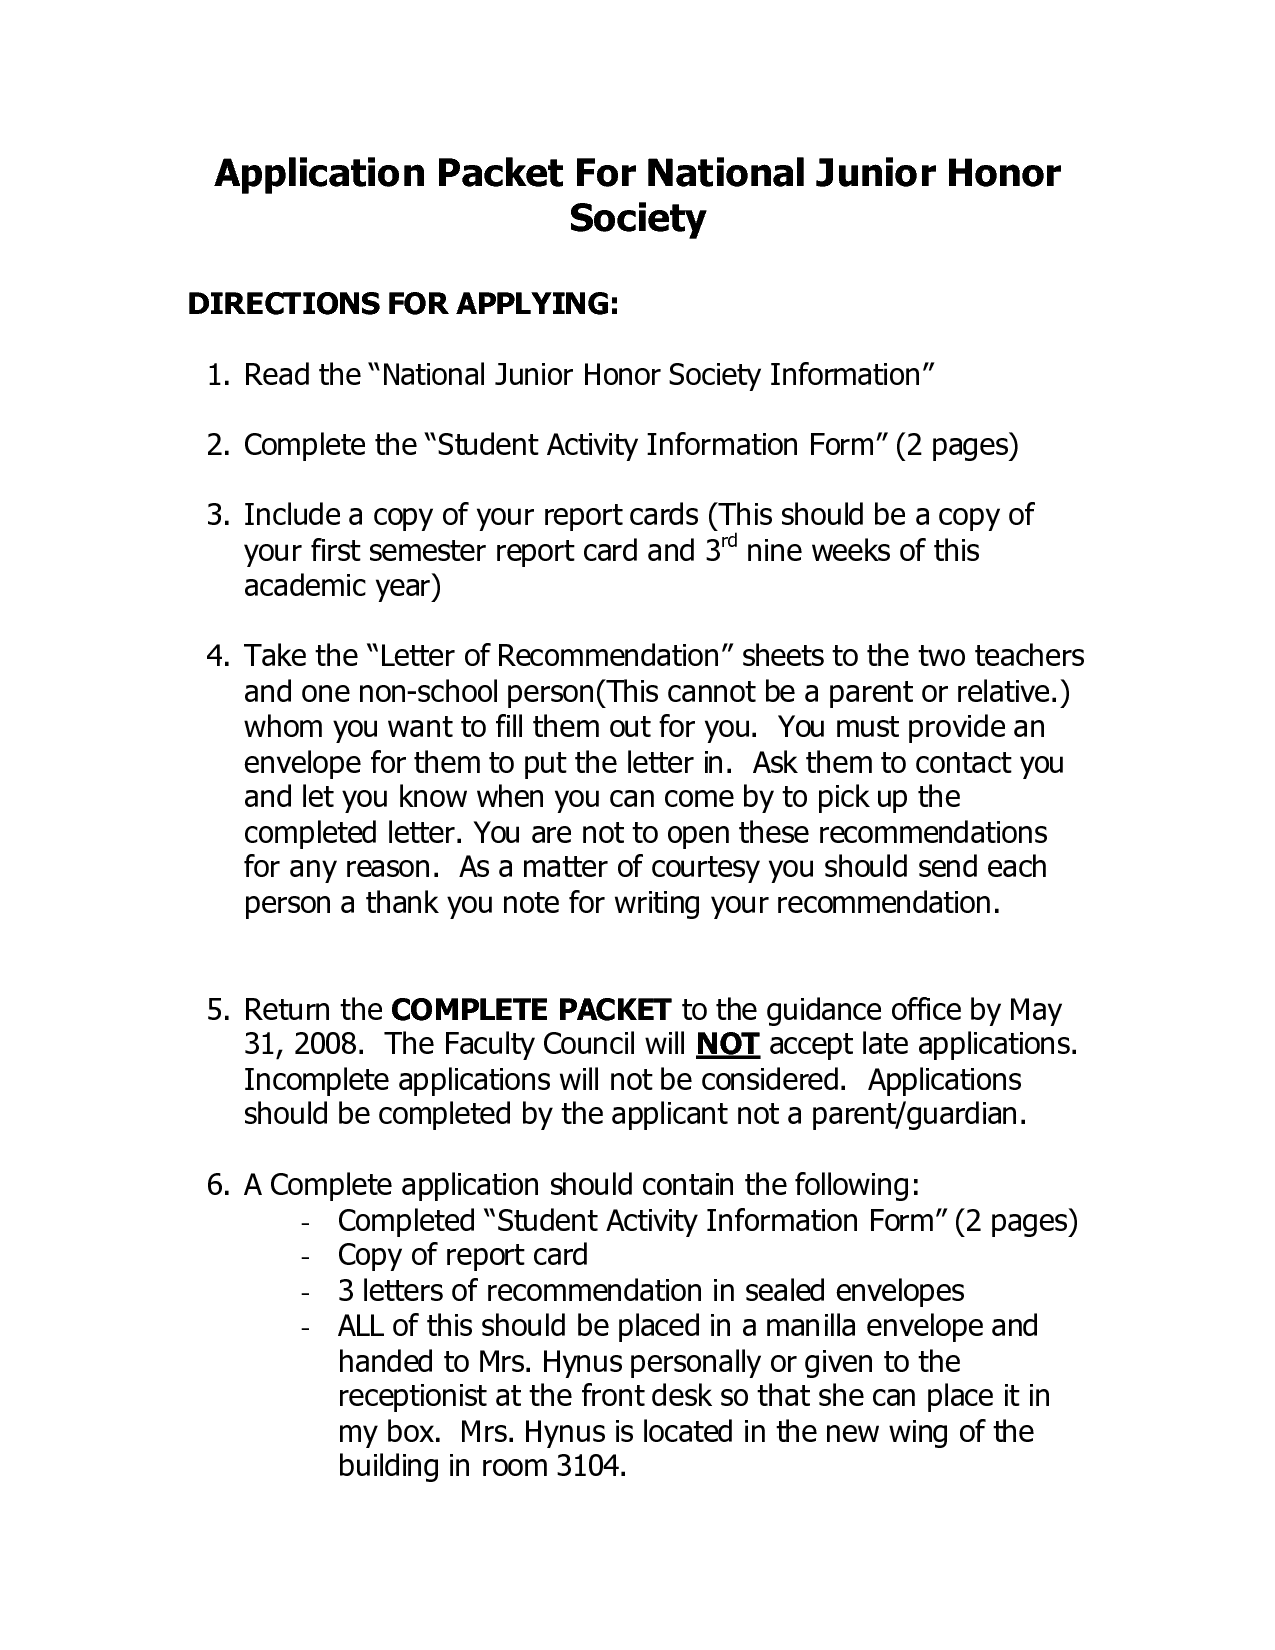 006 Essay Example National Honor Society Letter Of Recommendation For High School Student Essays L Outstanding Application Structure Examples Full